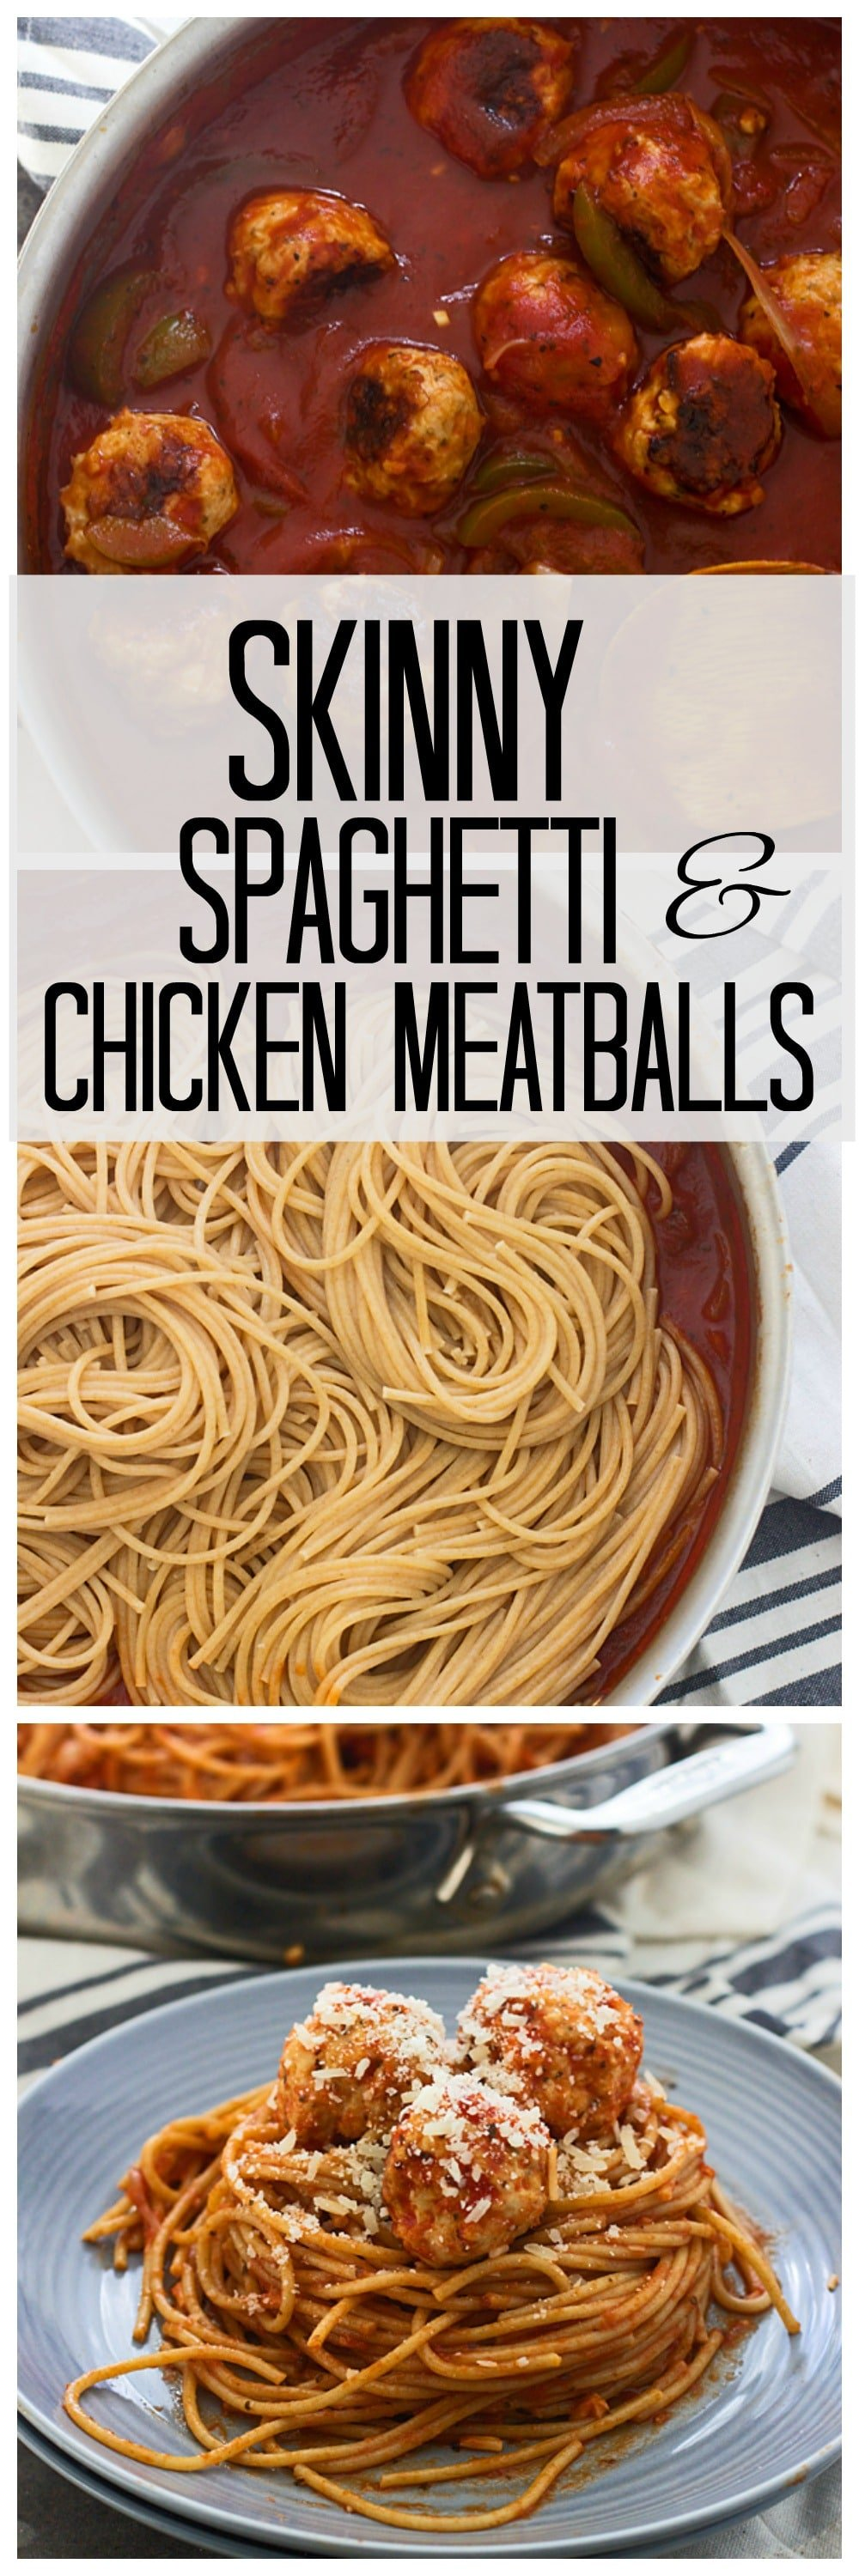 Skinny Spaghetti and Chicken Meatballs -- All the flavor, with a fraction of the fat and added fiber!